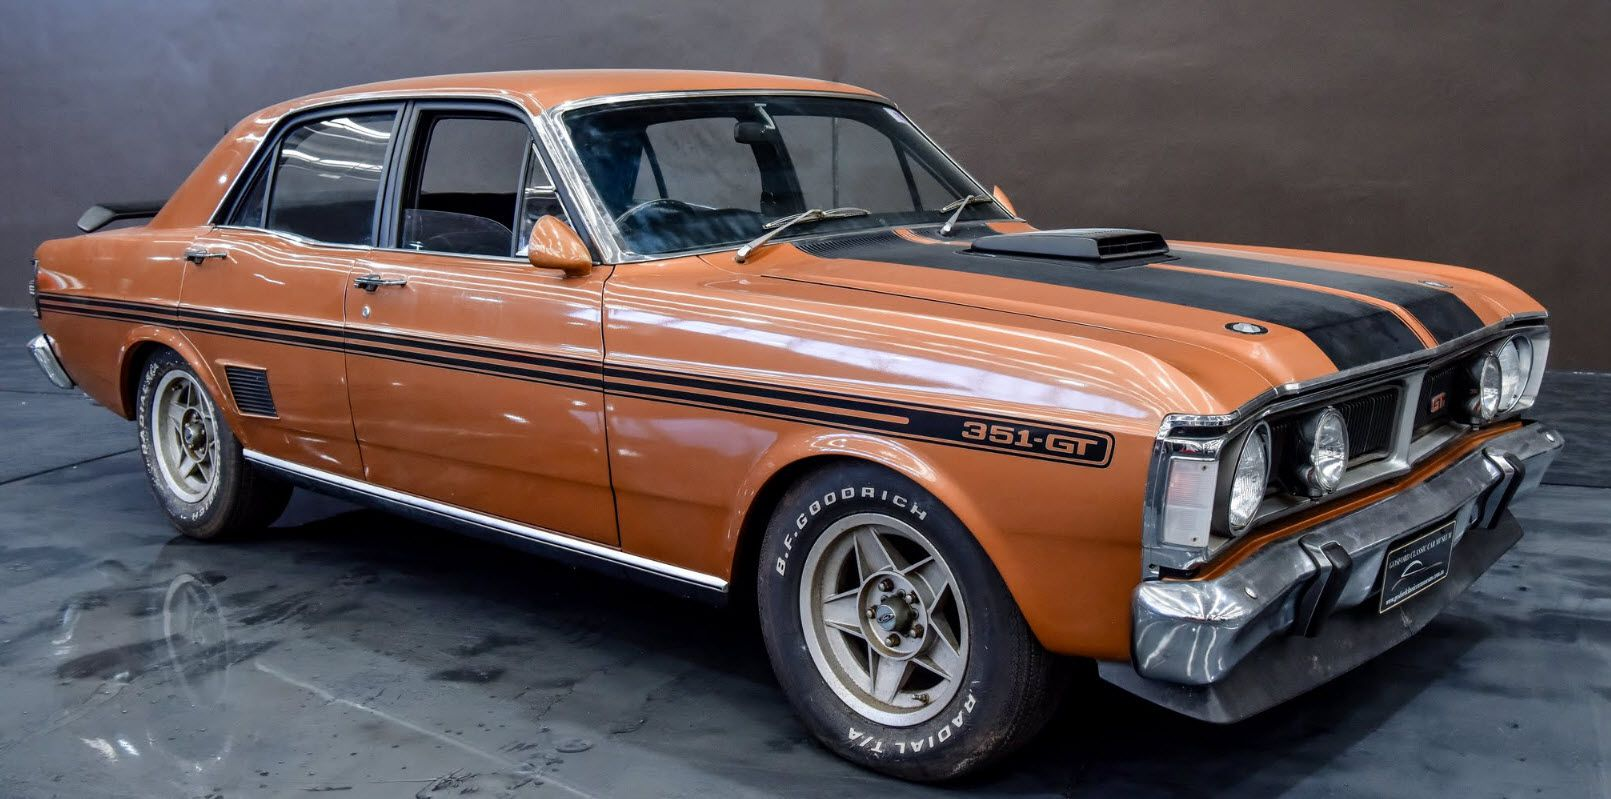 Aussie Muscle Cars Available Today Its One Of The Rarest Barn Finds In Australian History And Thats Why This  Ford Falcon Phase Iii Gtho